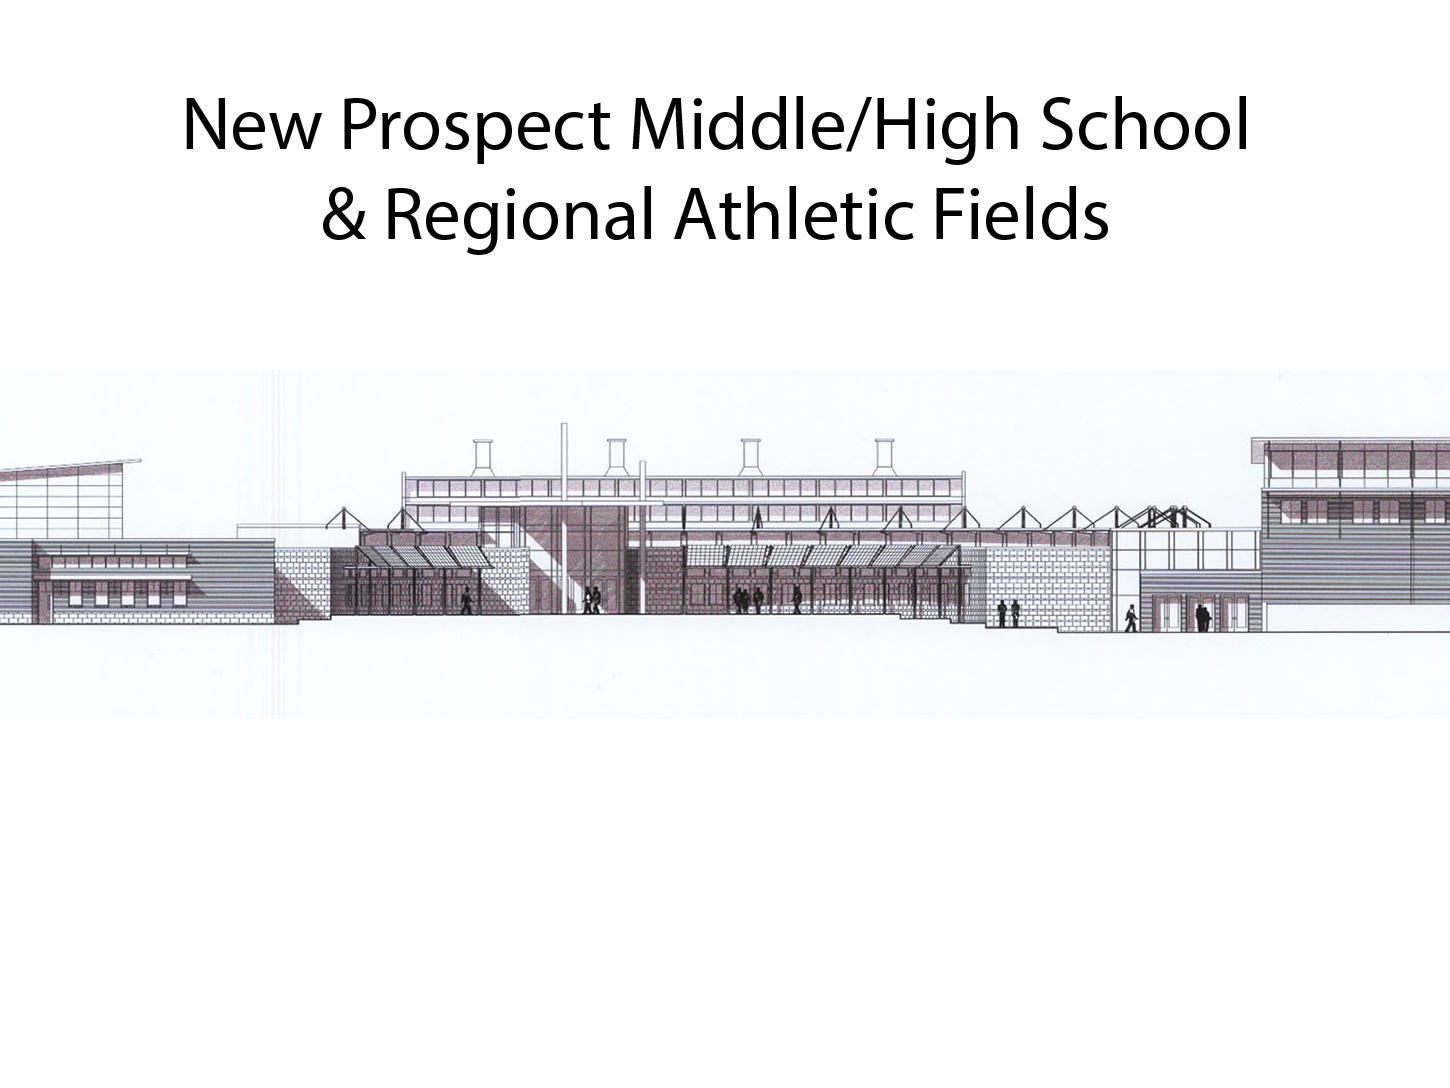 37_20new_20prospect_20middle-high_20school_20fort_20collins_20colorado